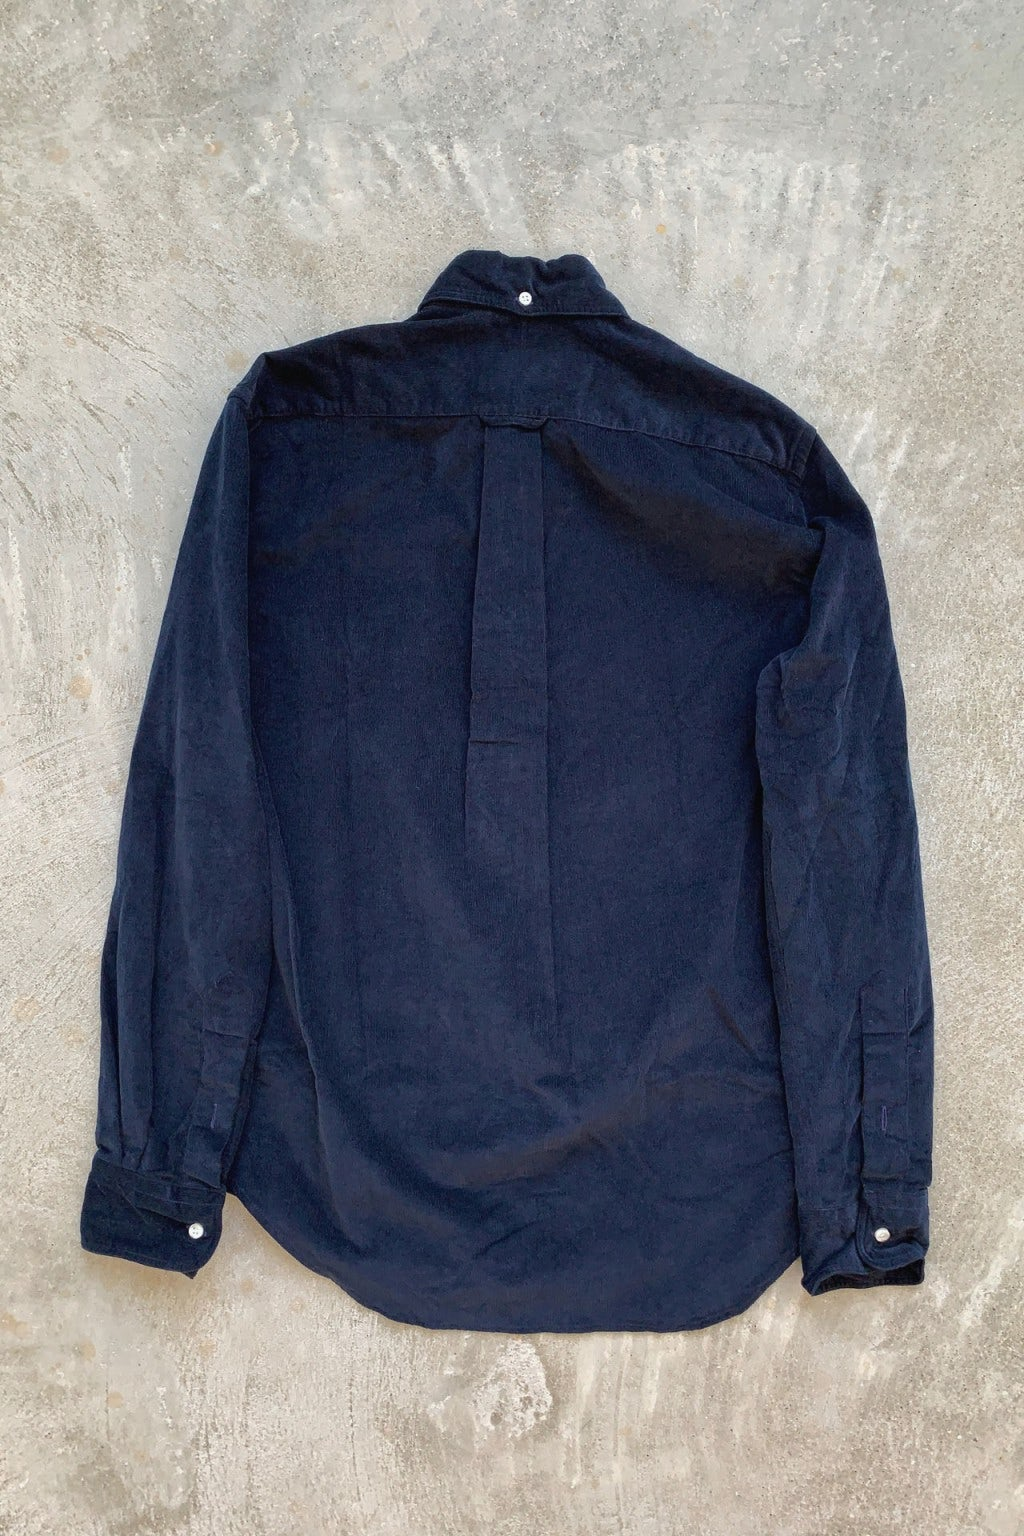 Gitman Bros. Vintage Long Sleeve Button Down Navy Corduroy